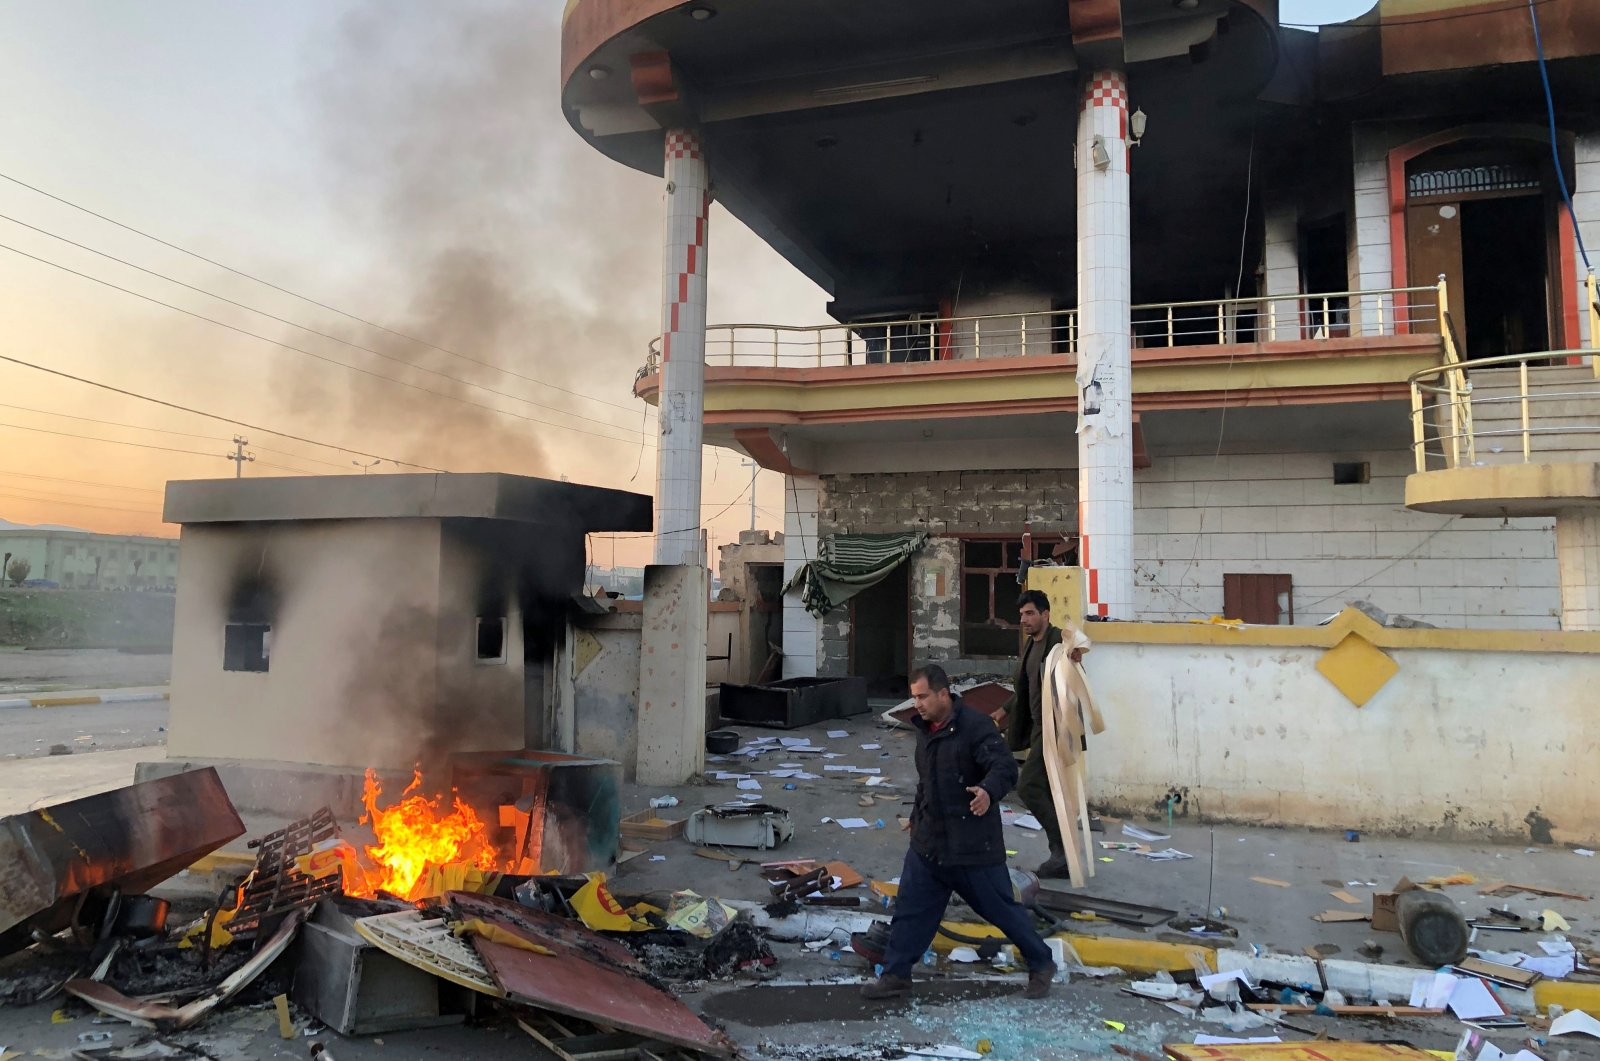 Men are seen outside the headquarters of the Kurdistan Democratic Party (KDP) after it was set on fire during anti-government protests on the outskirt of Sulaimaniyah, Iraq, Dec., 8, 2020. (REUTERS Photo)